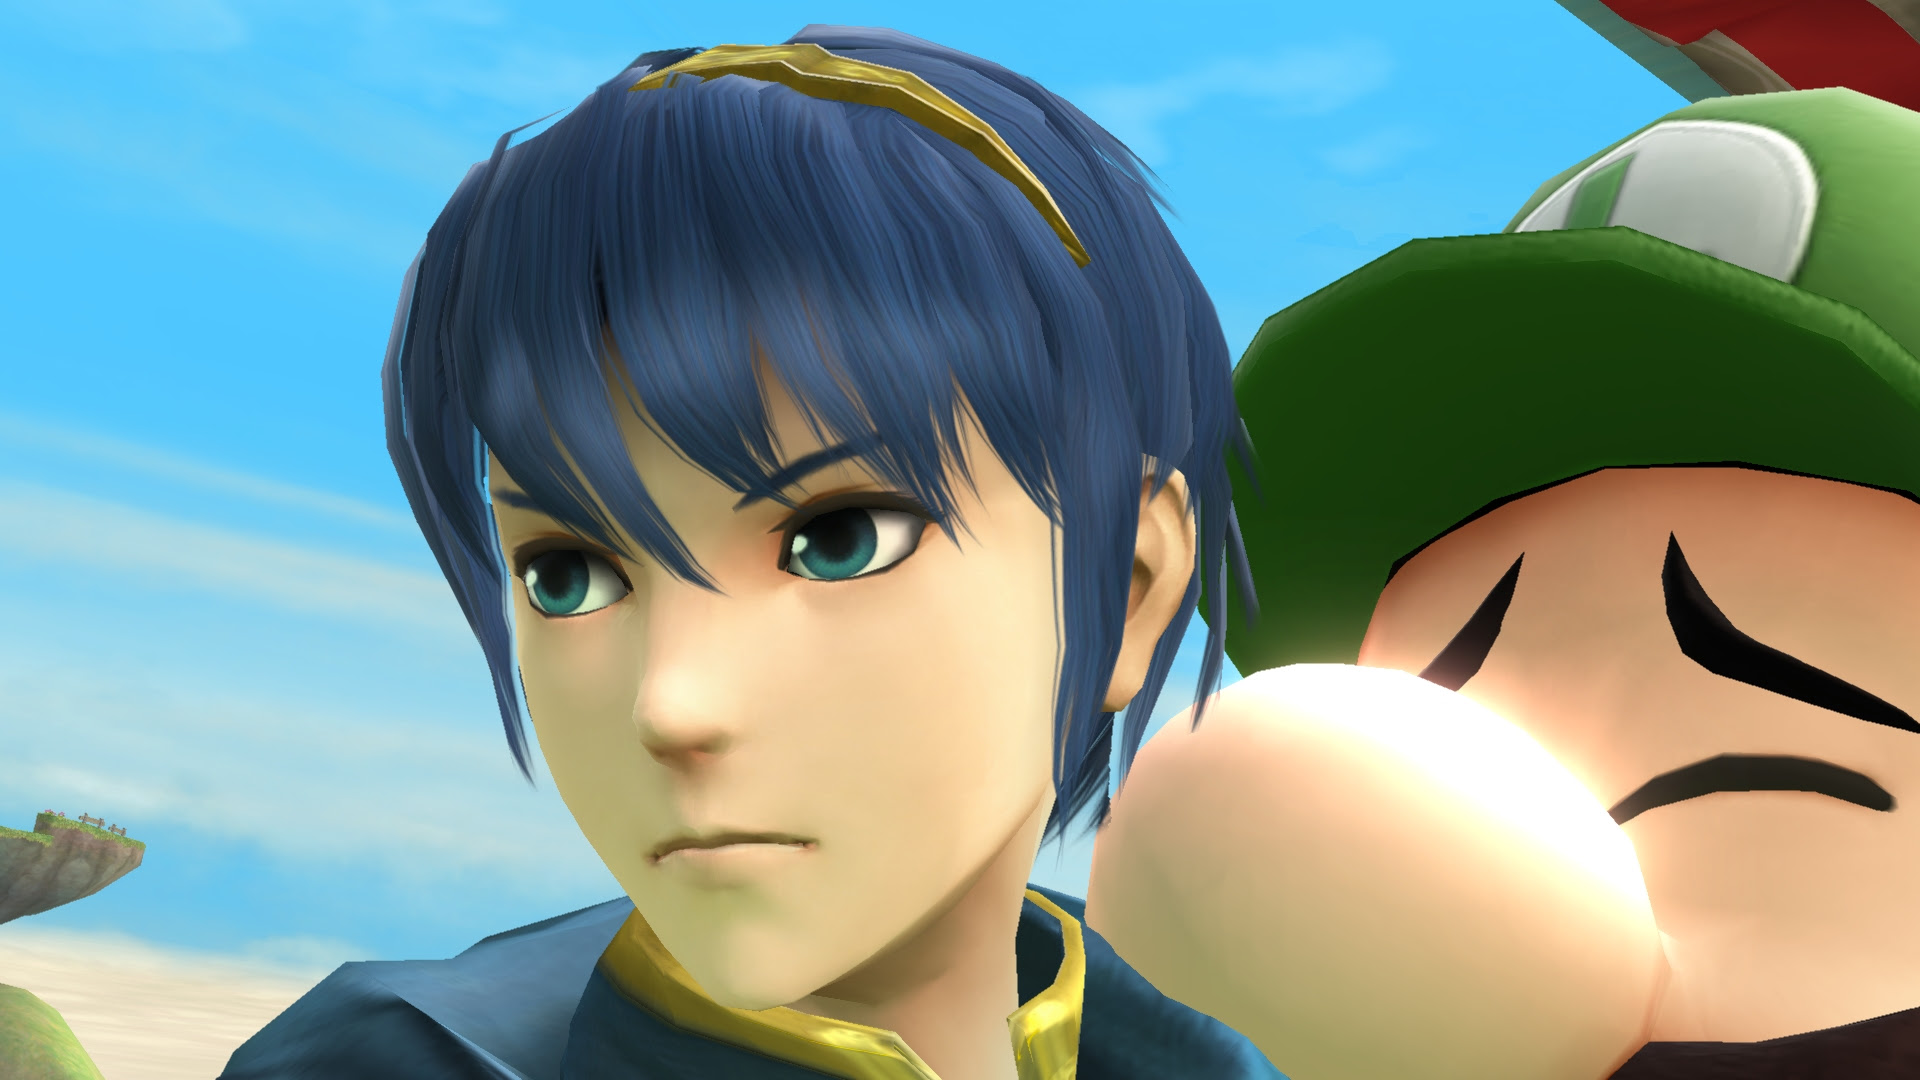 Here is a look at Marth and Chrom in Fire Emblem Warriors screenshot